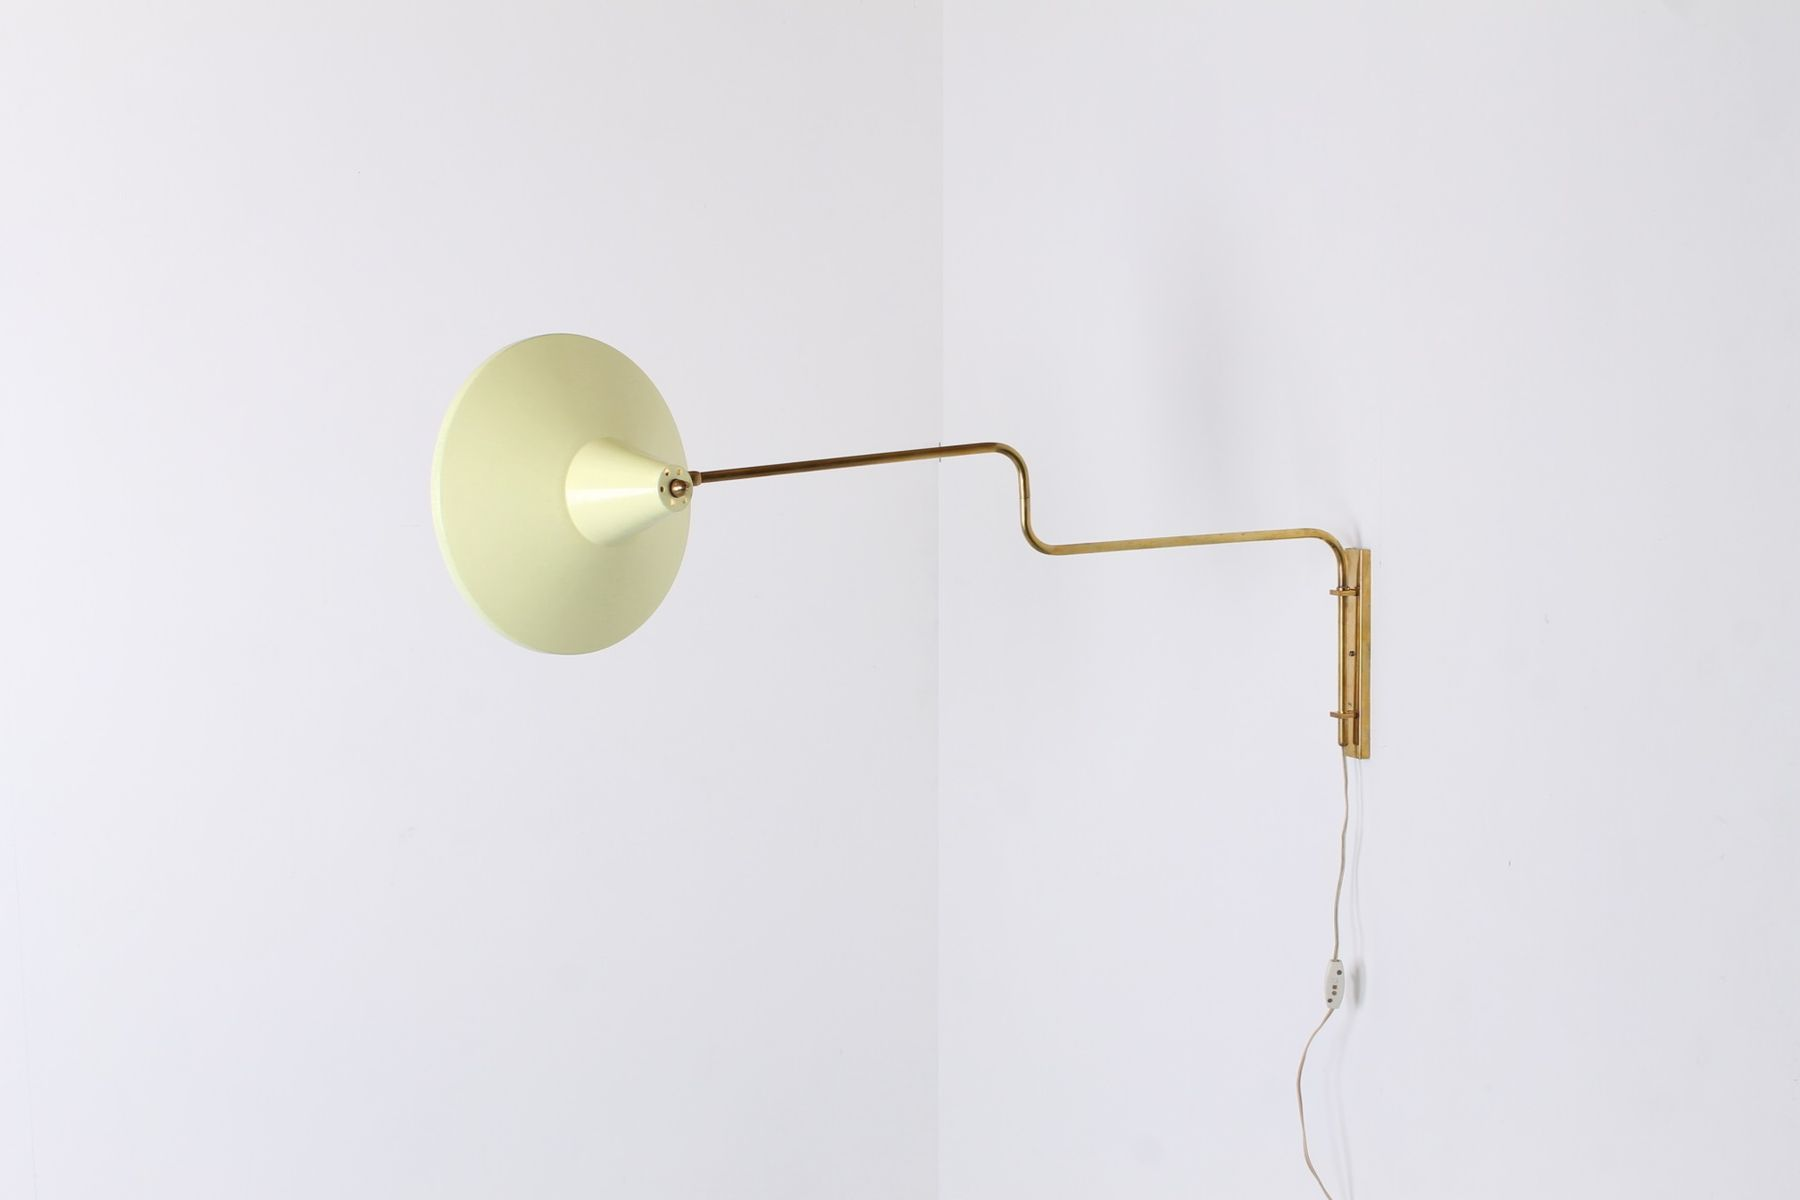 Paperclip Swinging Brass Yellow Wall Light, 1950s for sale at Pamono